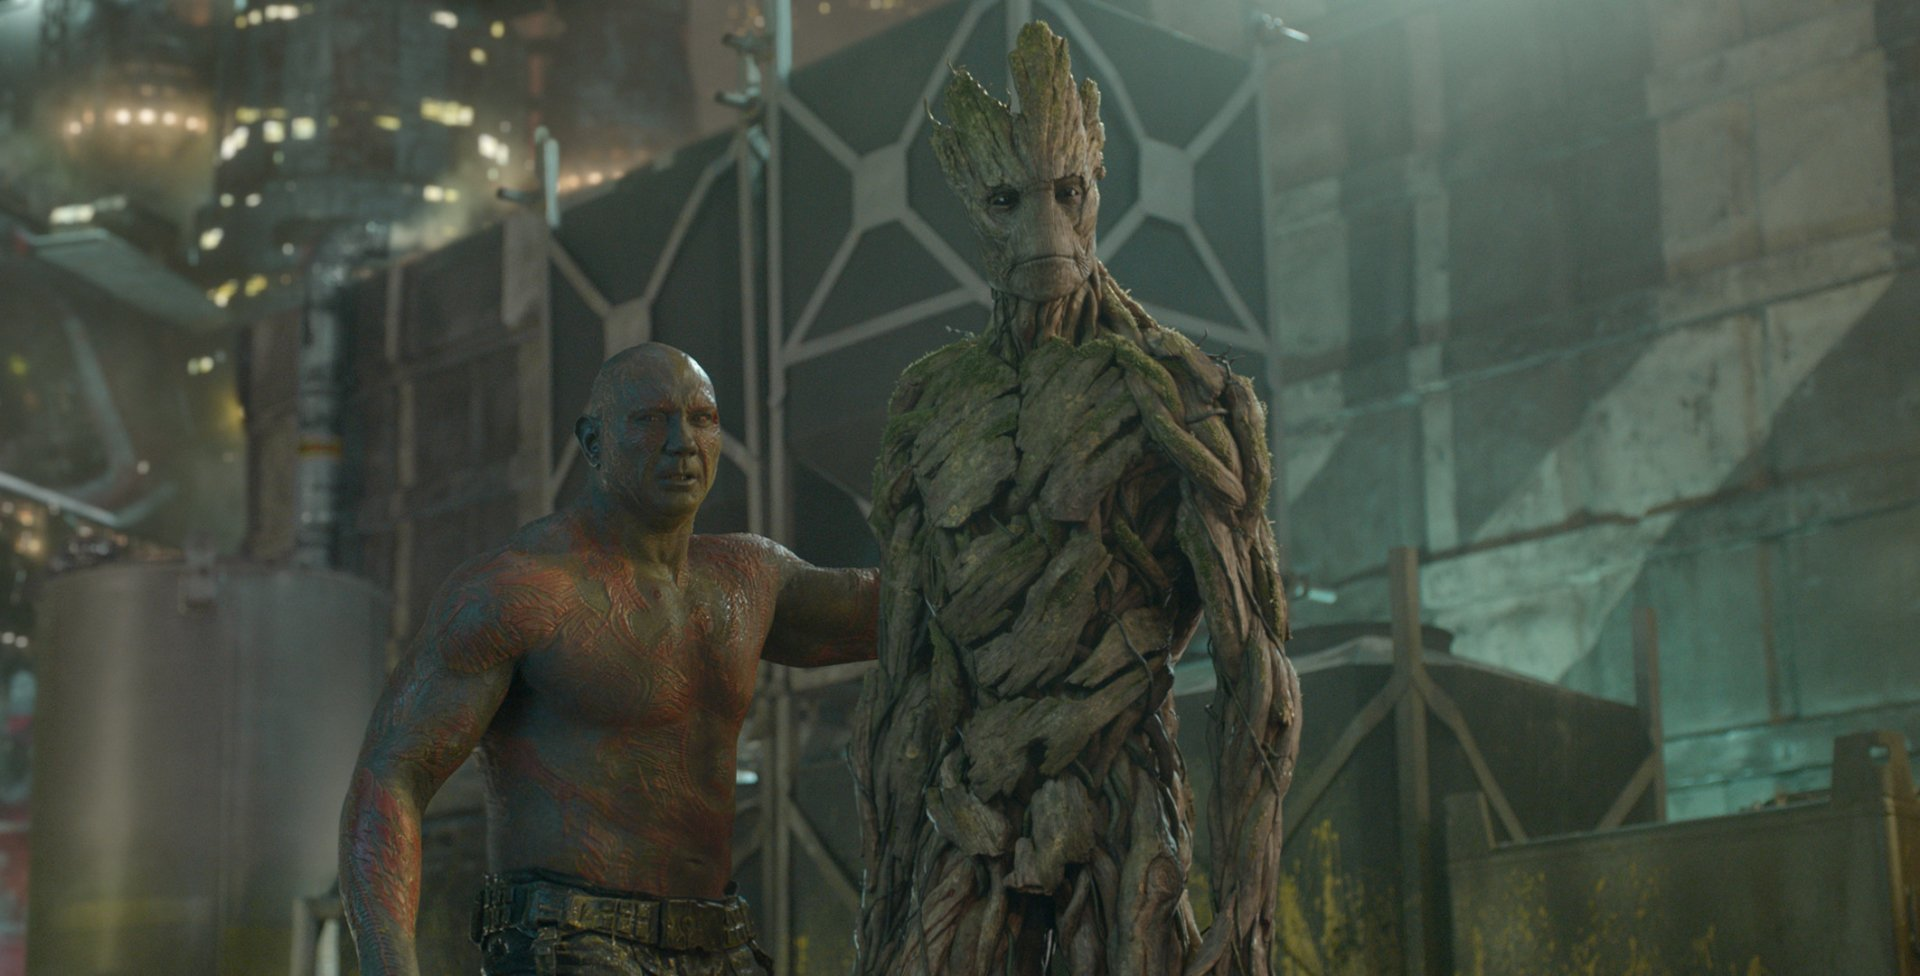 Movie - Guardians of the Galaxy  Drax The Destroyer Dave Bautista Groot Wallpaper